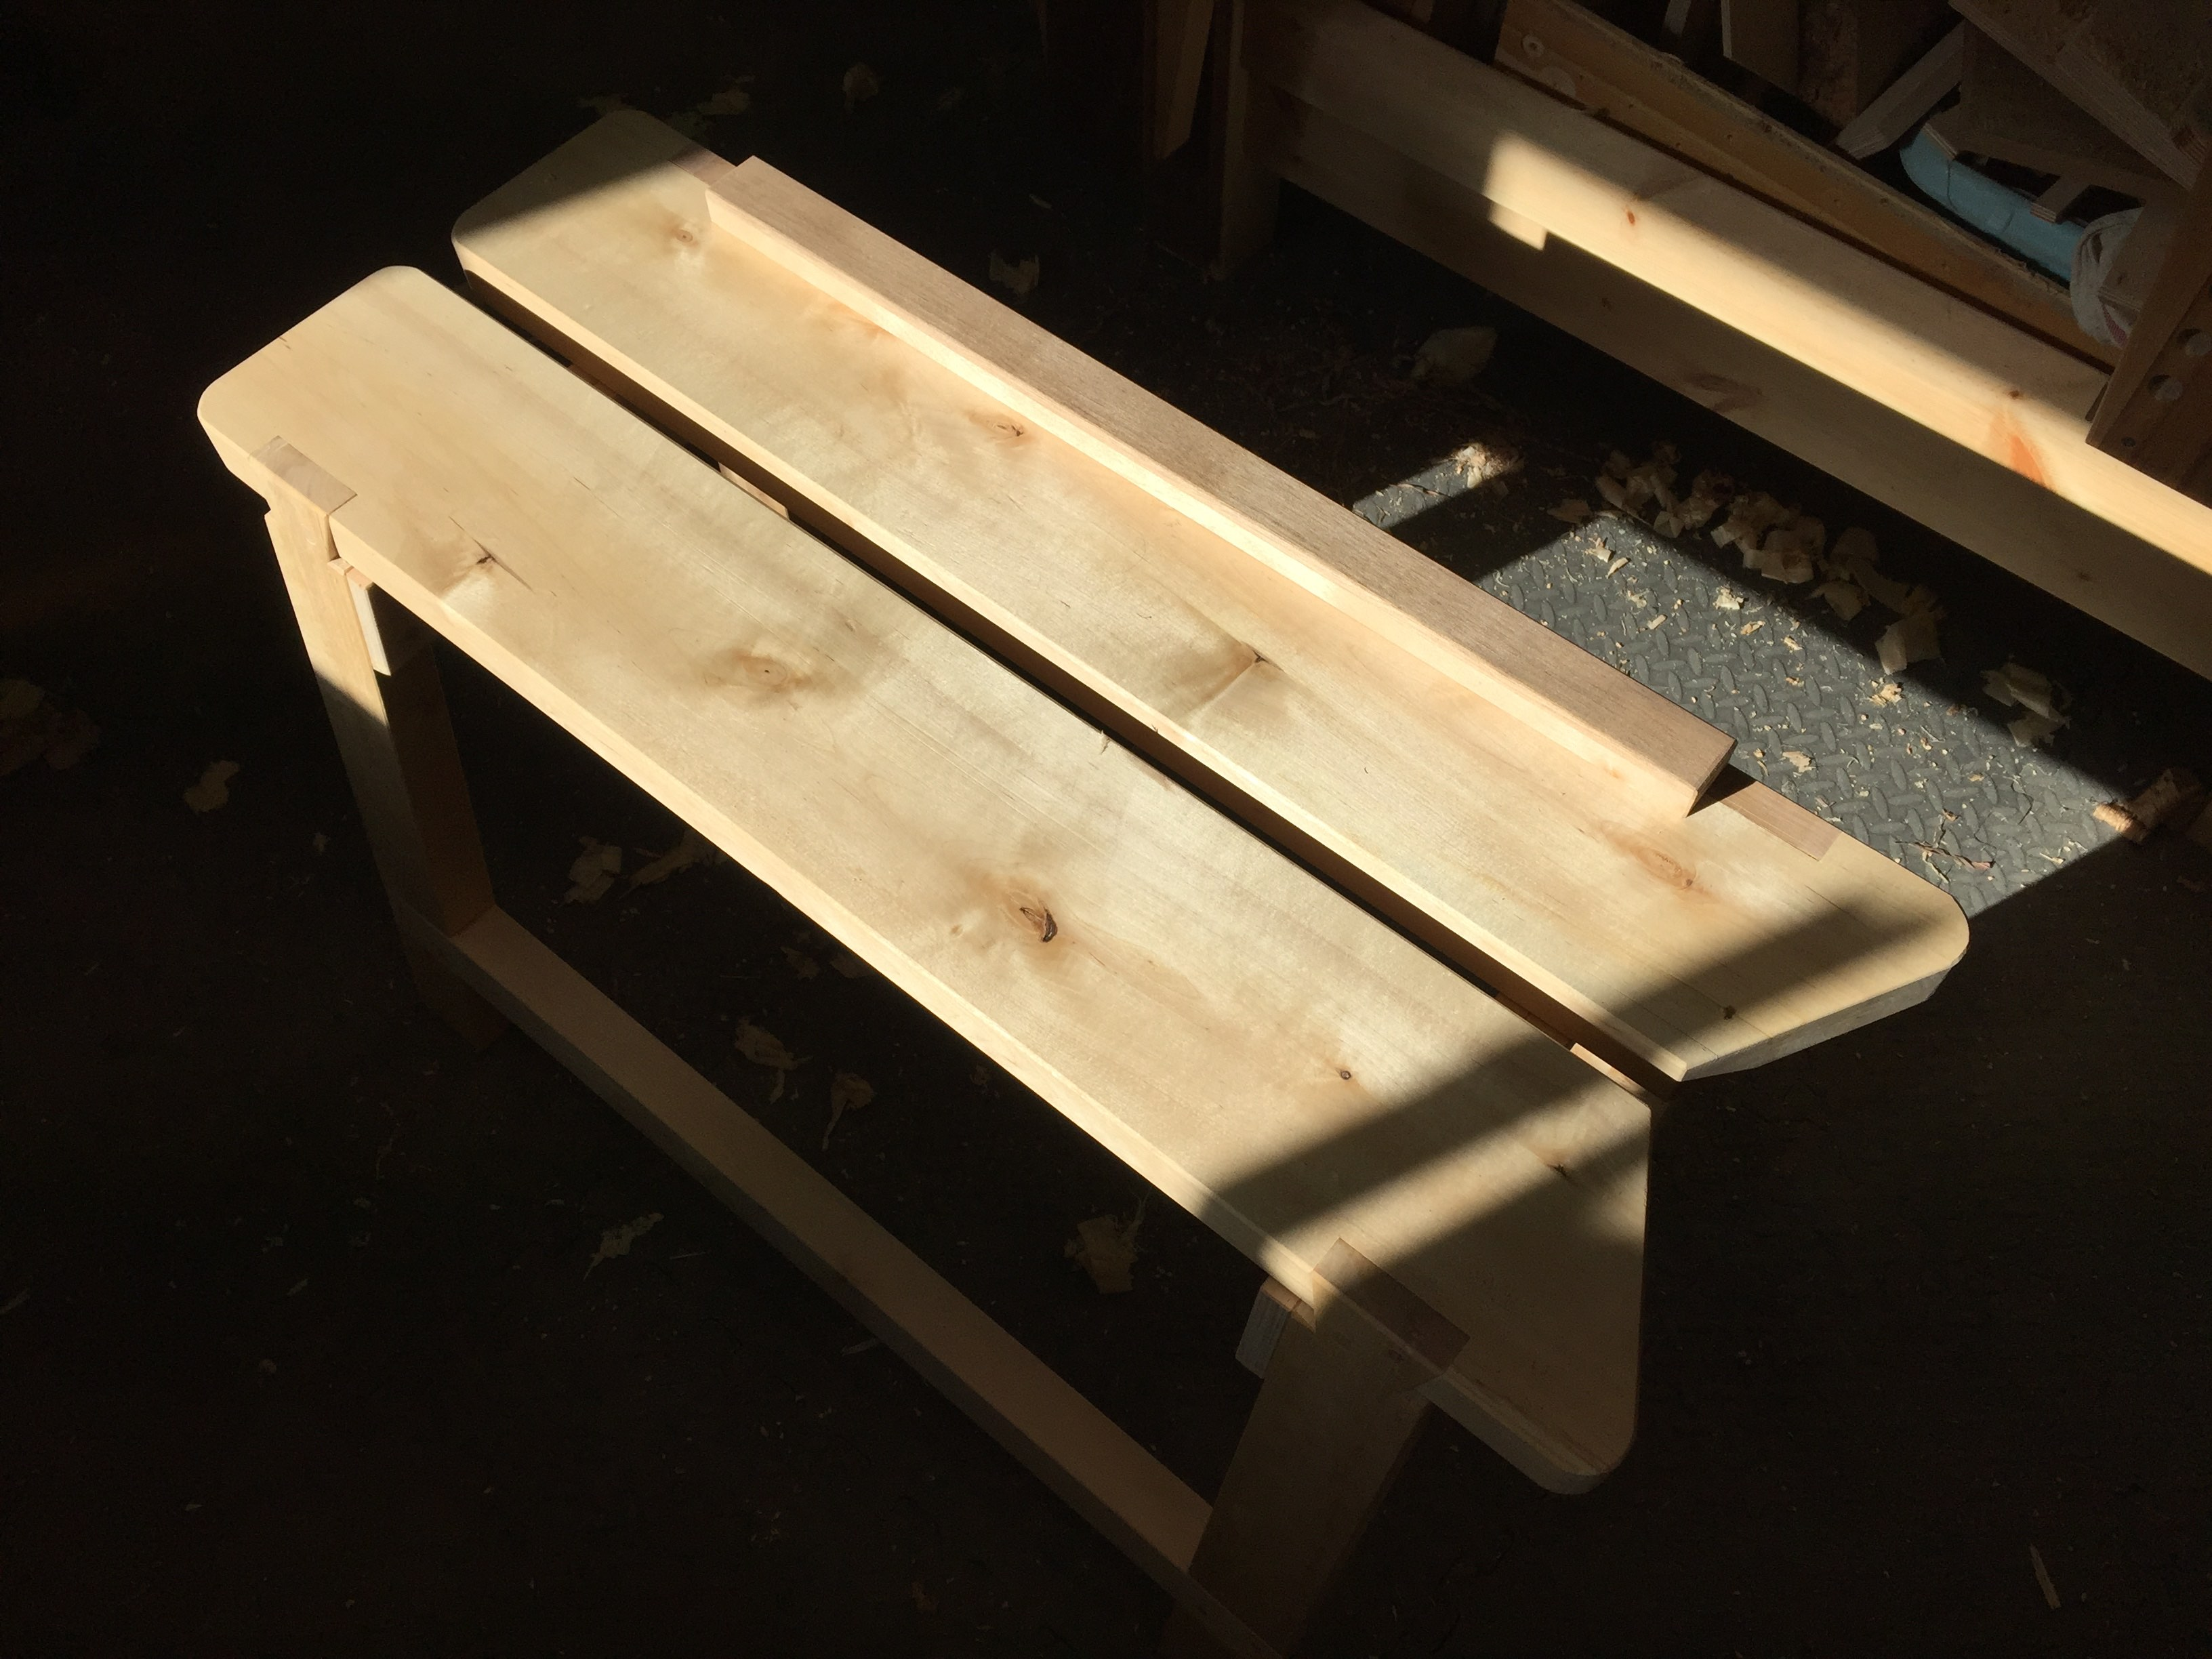 A Sawyer's Bench in Finland